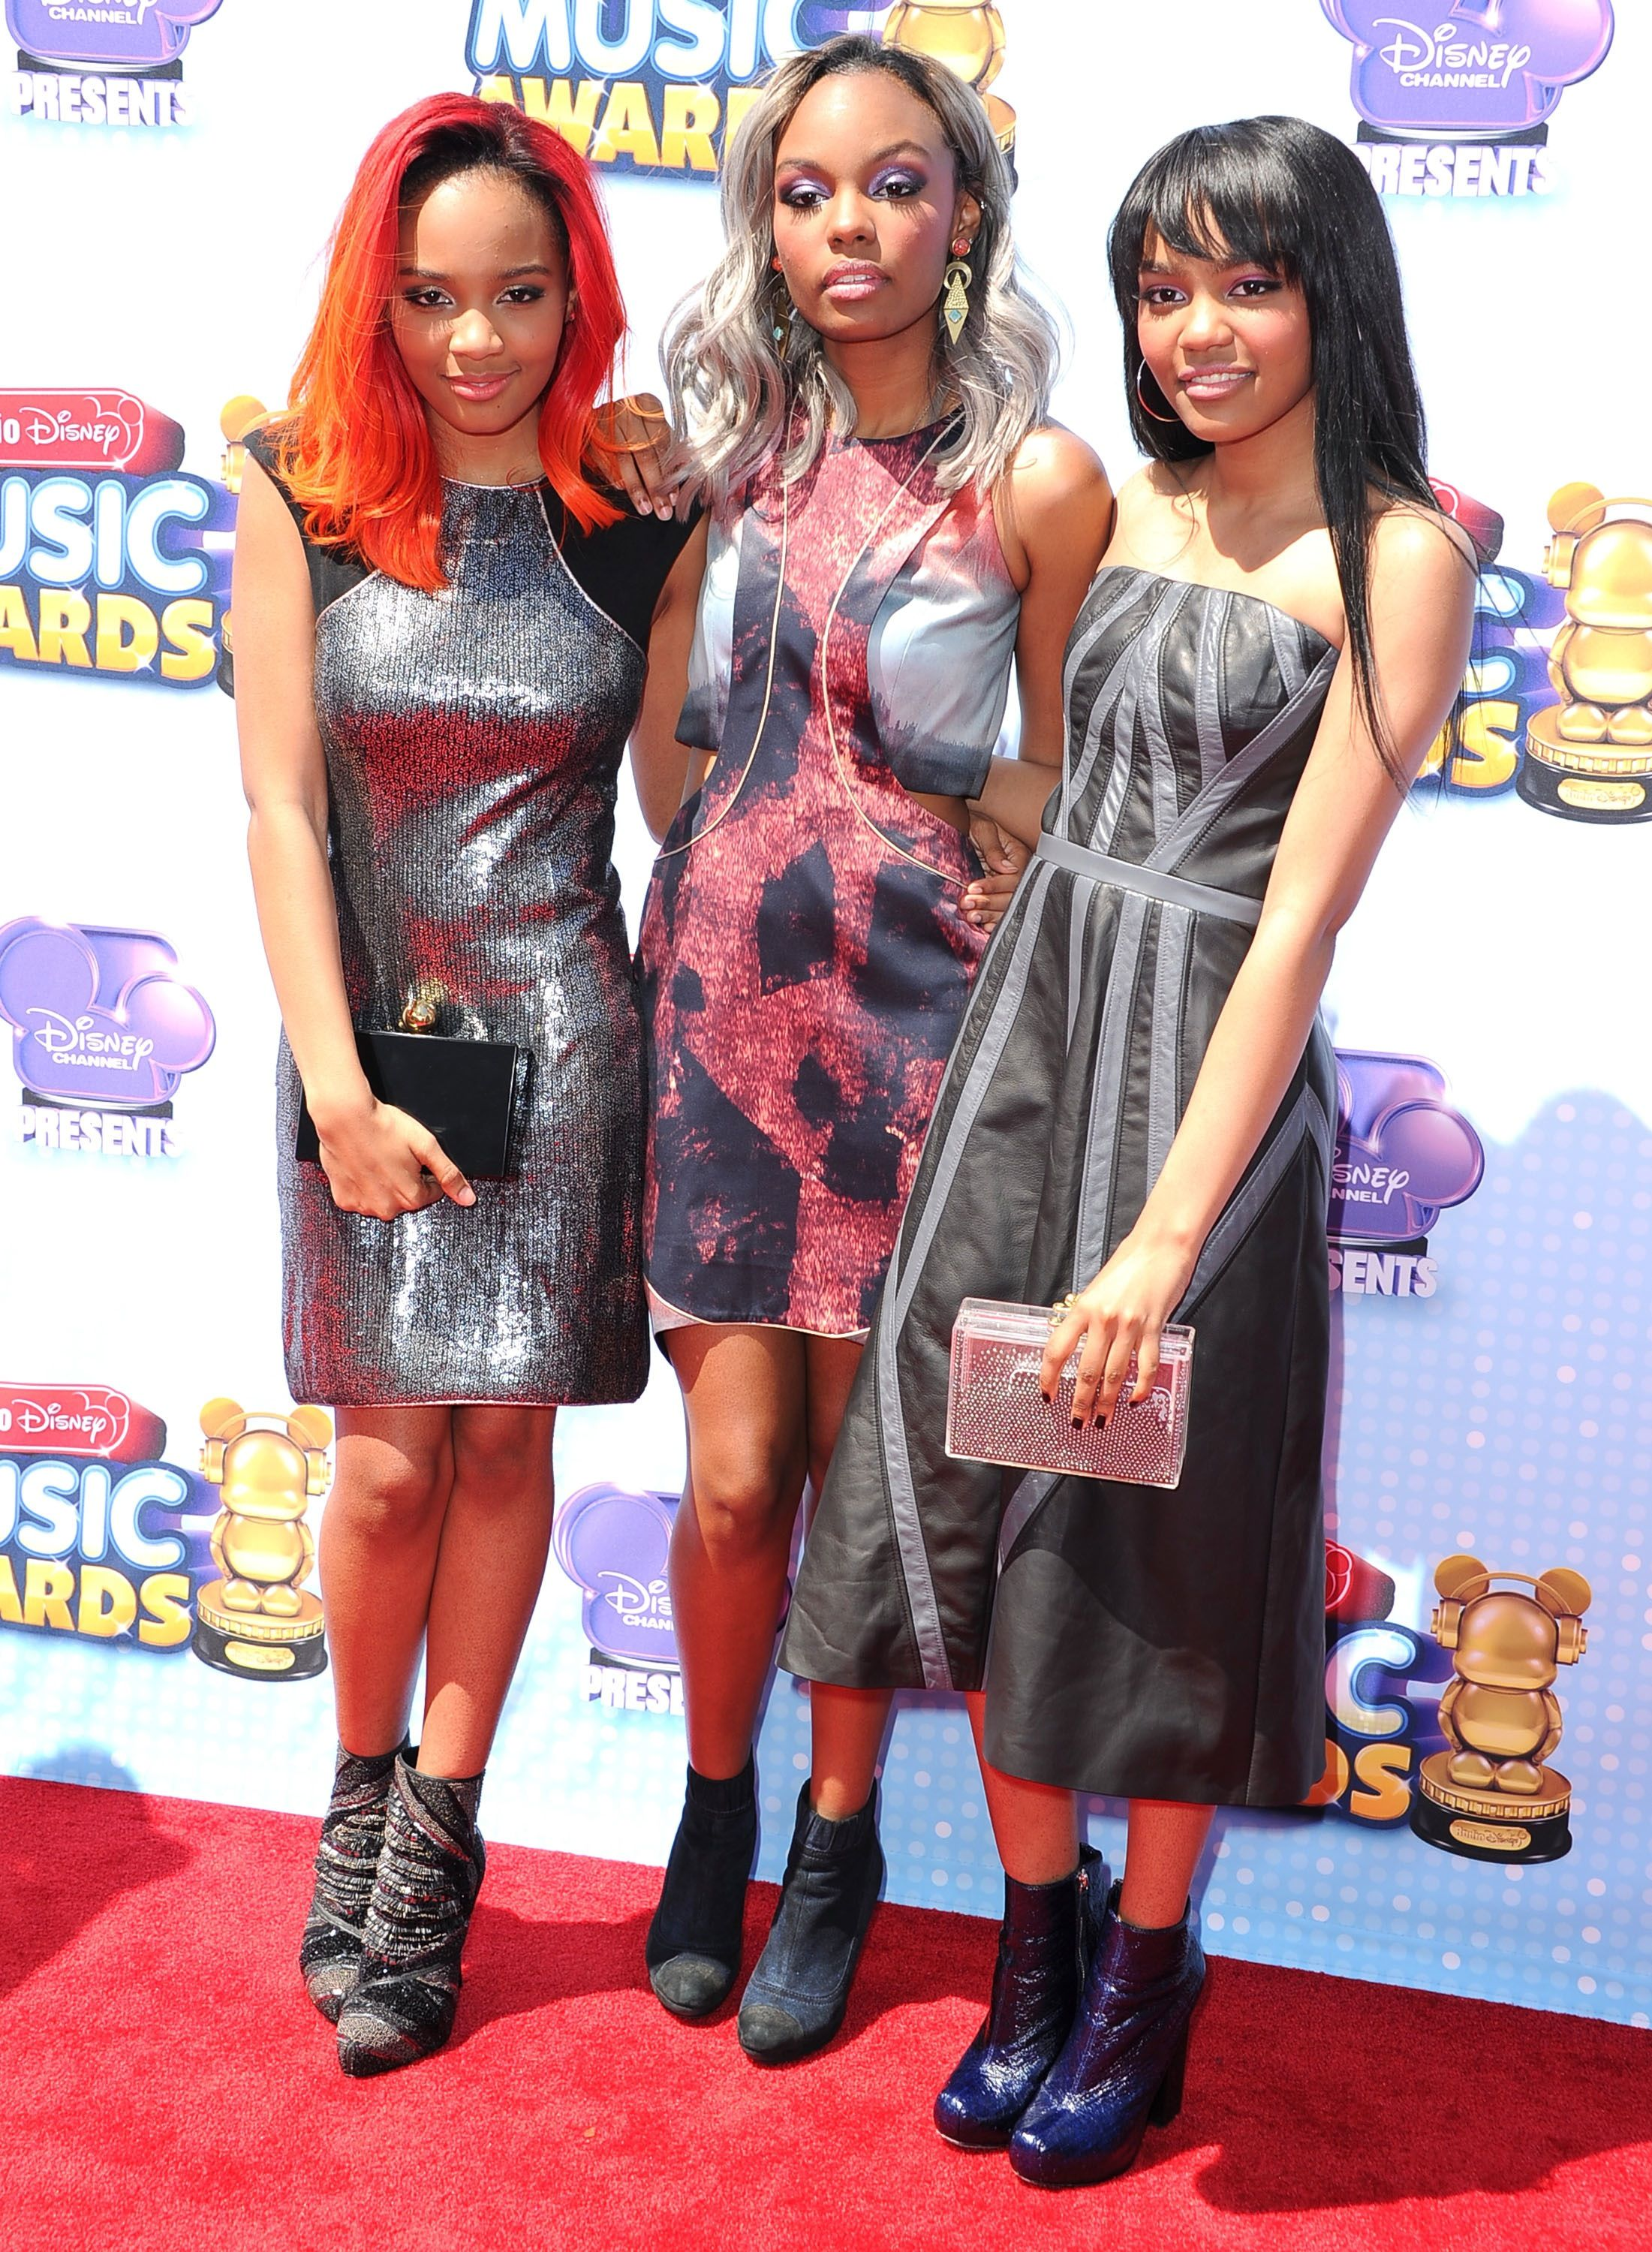 McClain -- Most Stylish Celebs at the 2014 Radio Disney Music Awards | Twist #RDMAs